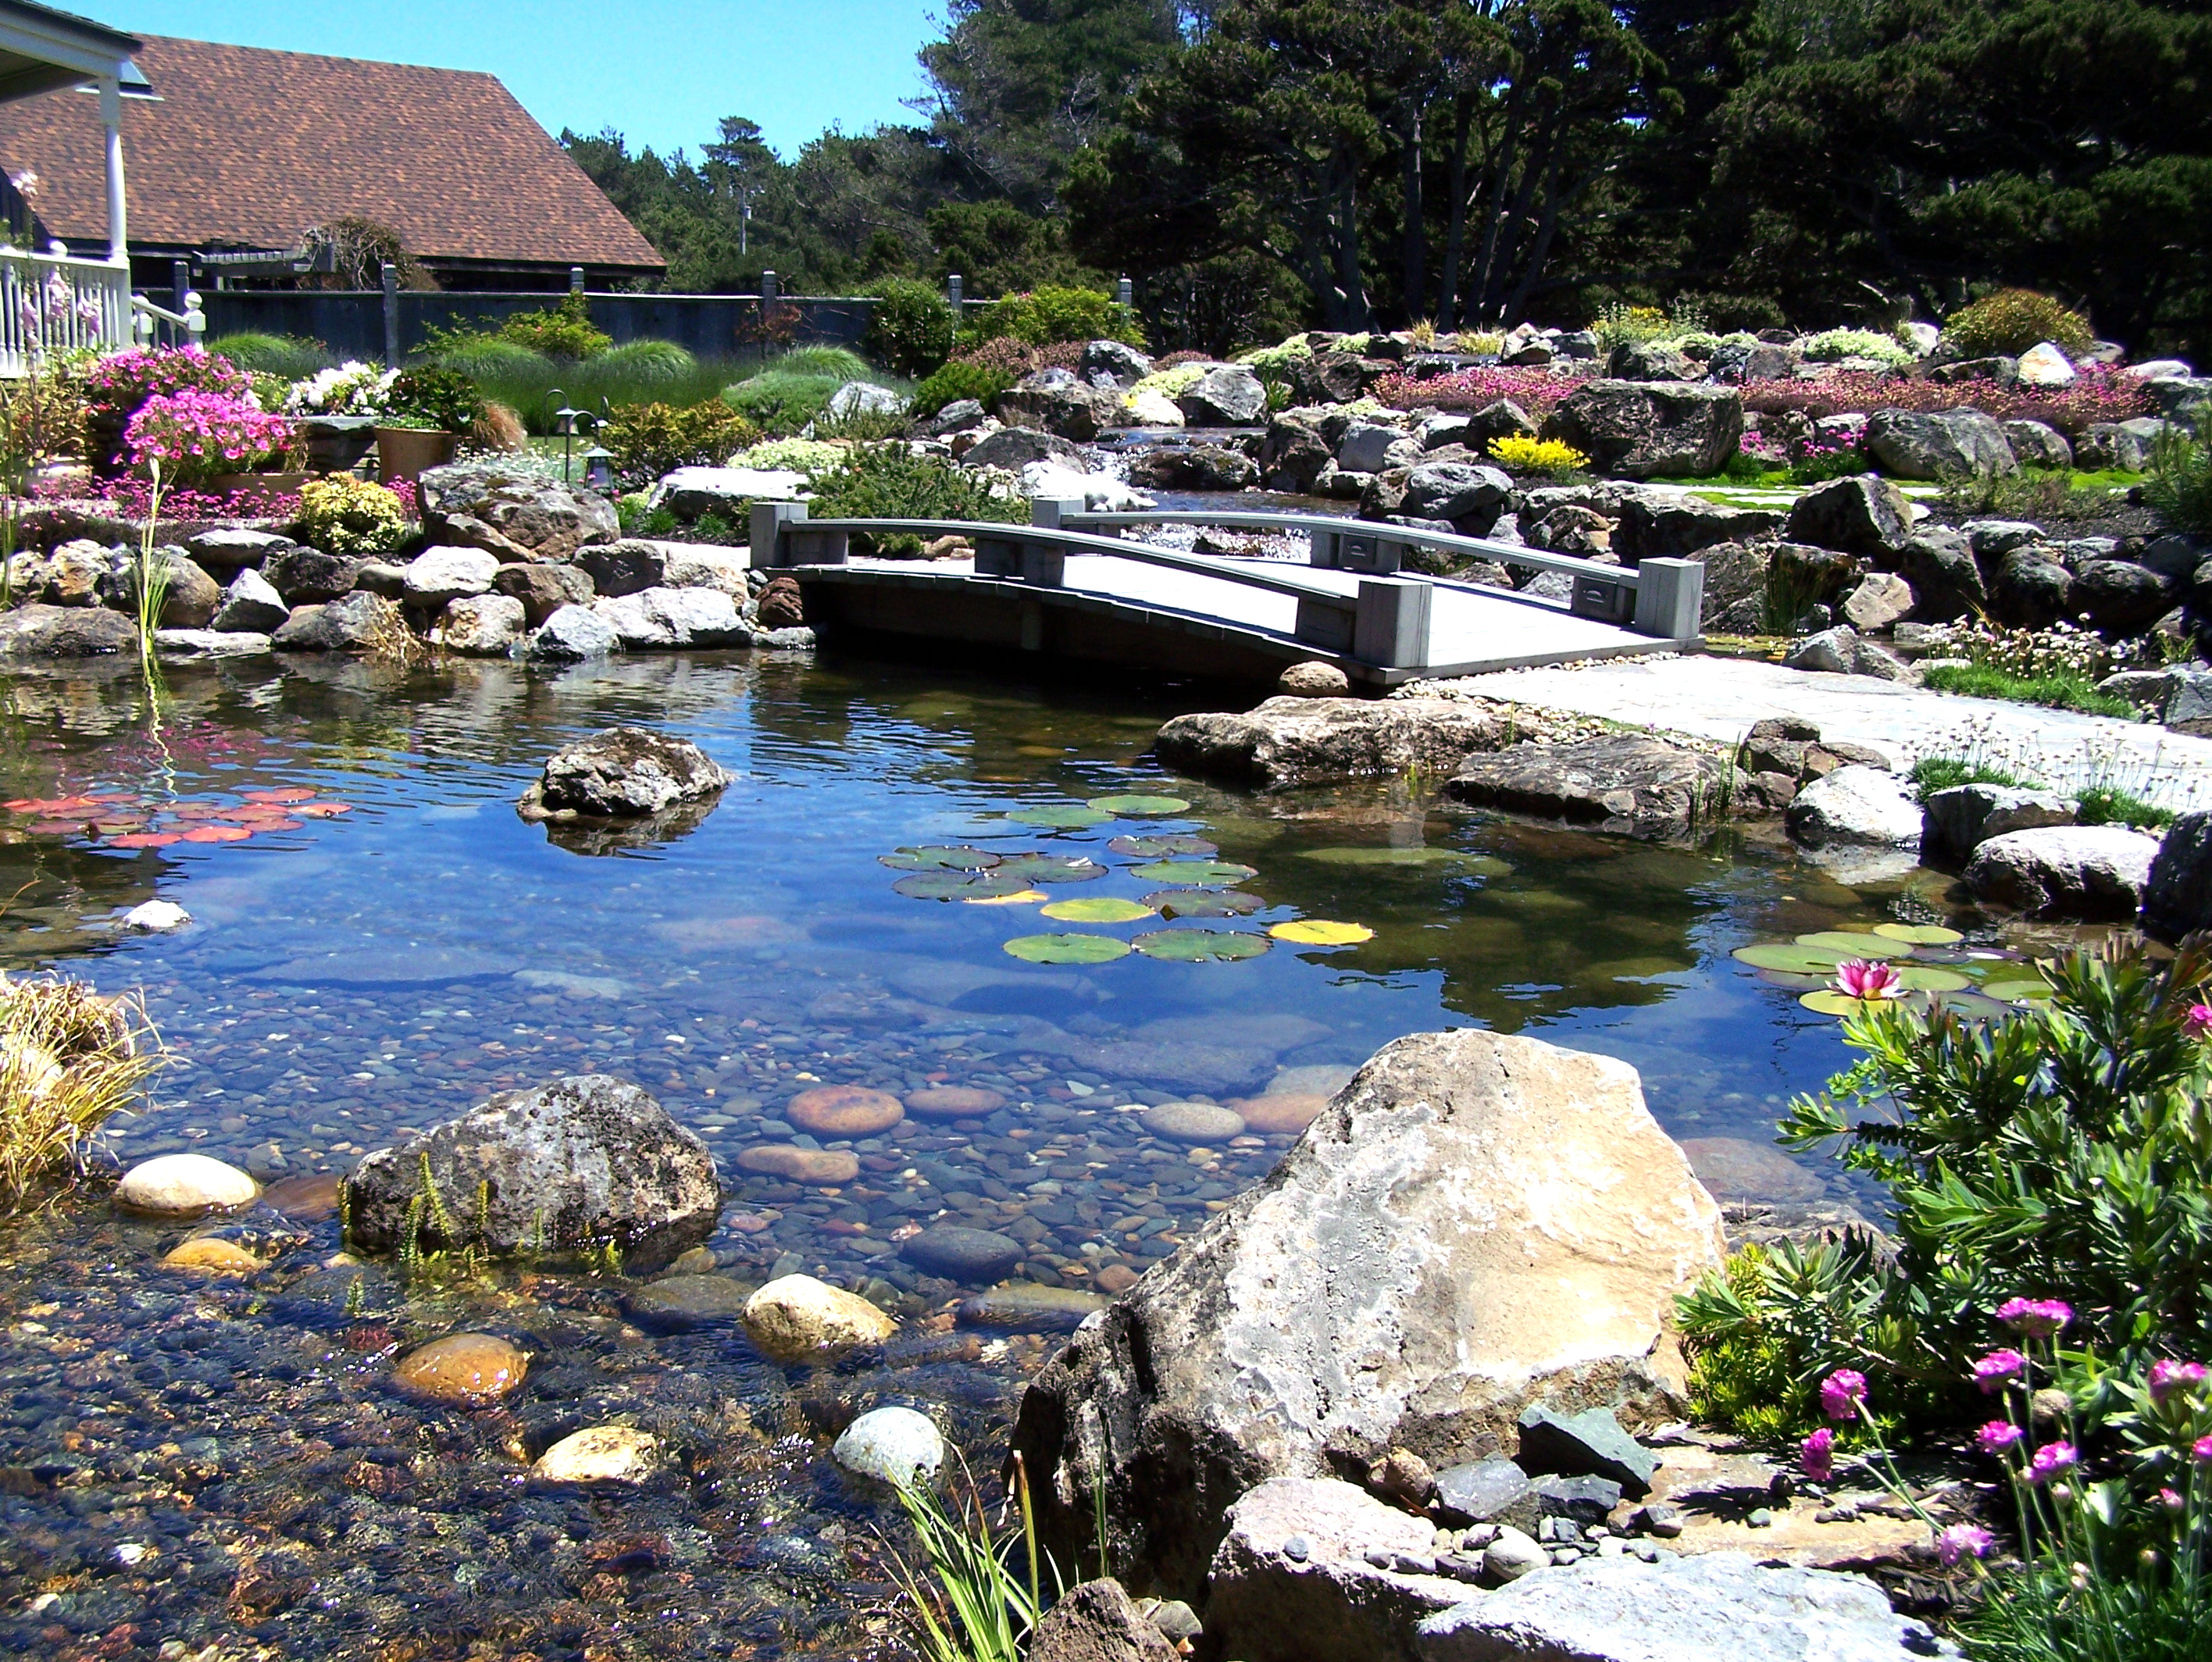 Top 4 Pond Problems and Solutions